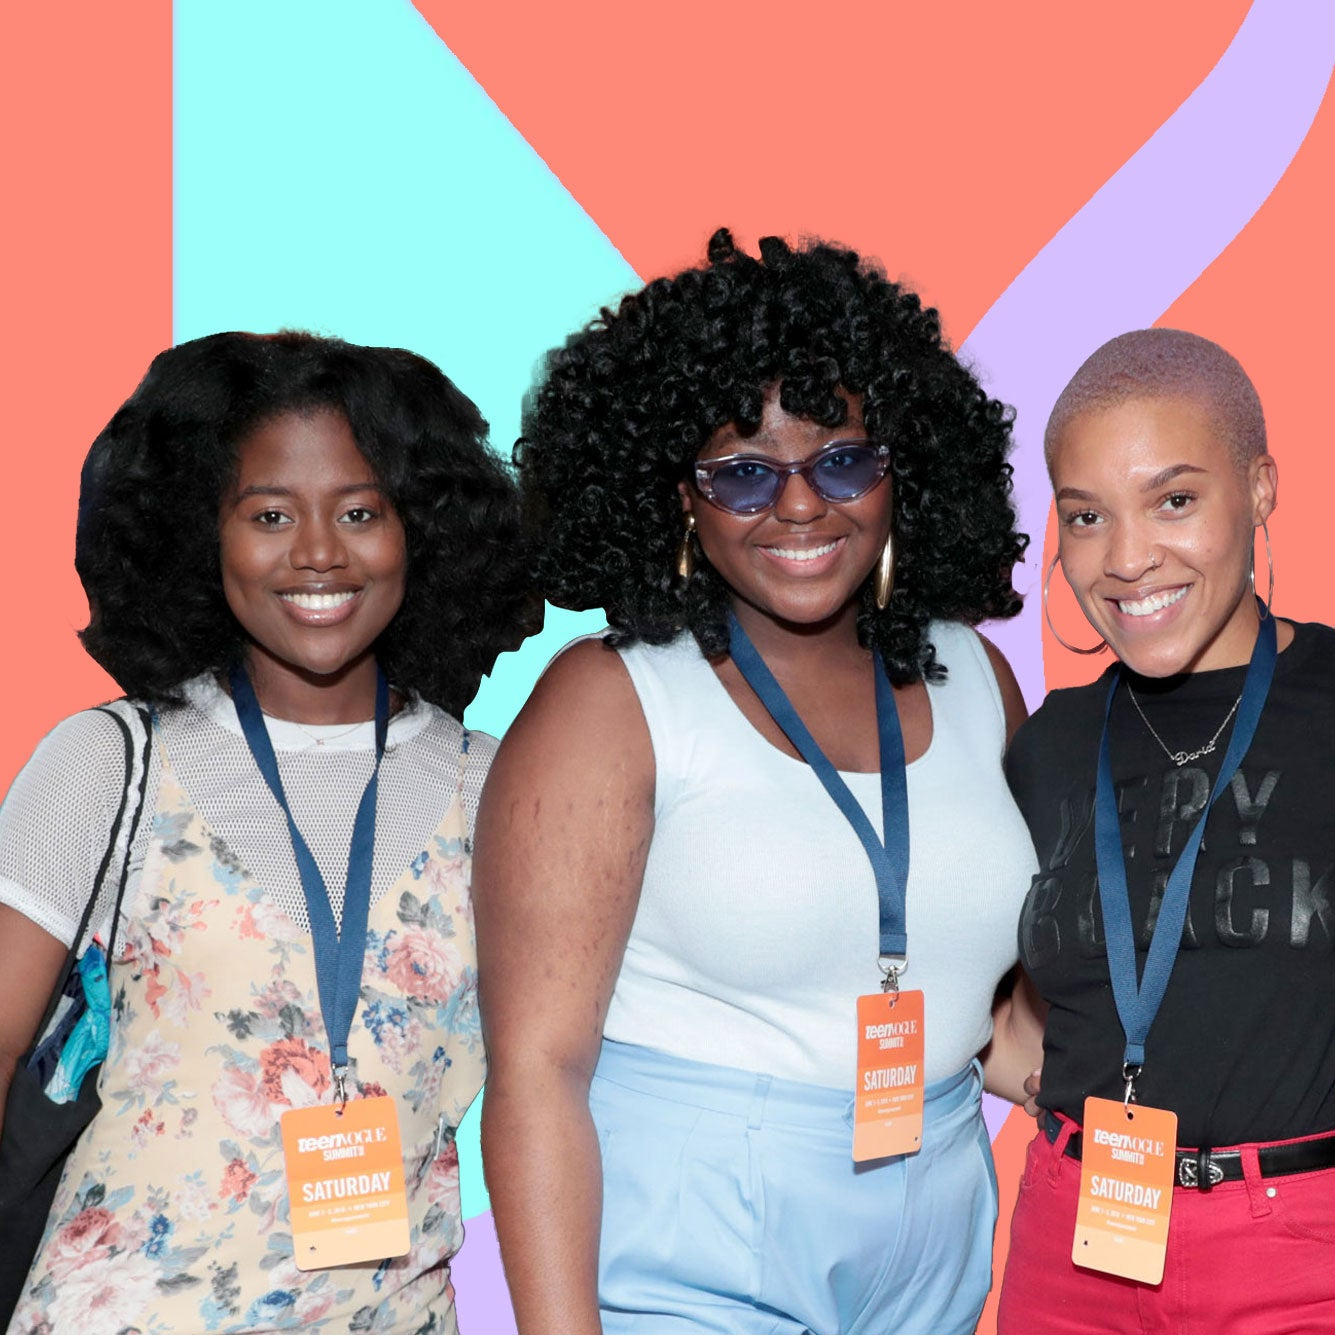 Teen Vogue Summit 2018: Young Black Women Are Here And Ready to Do The Work